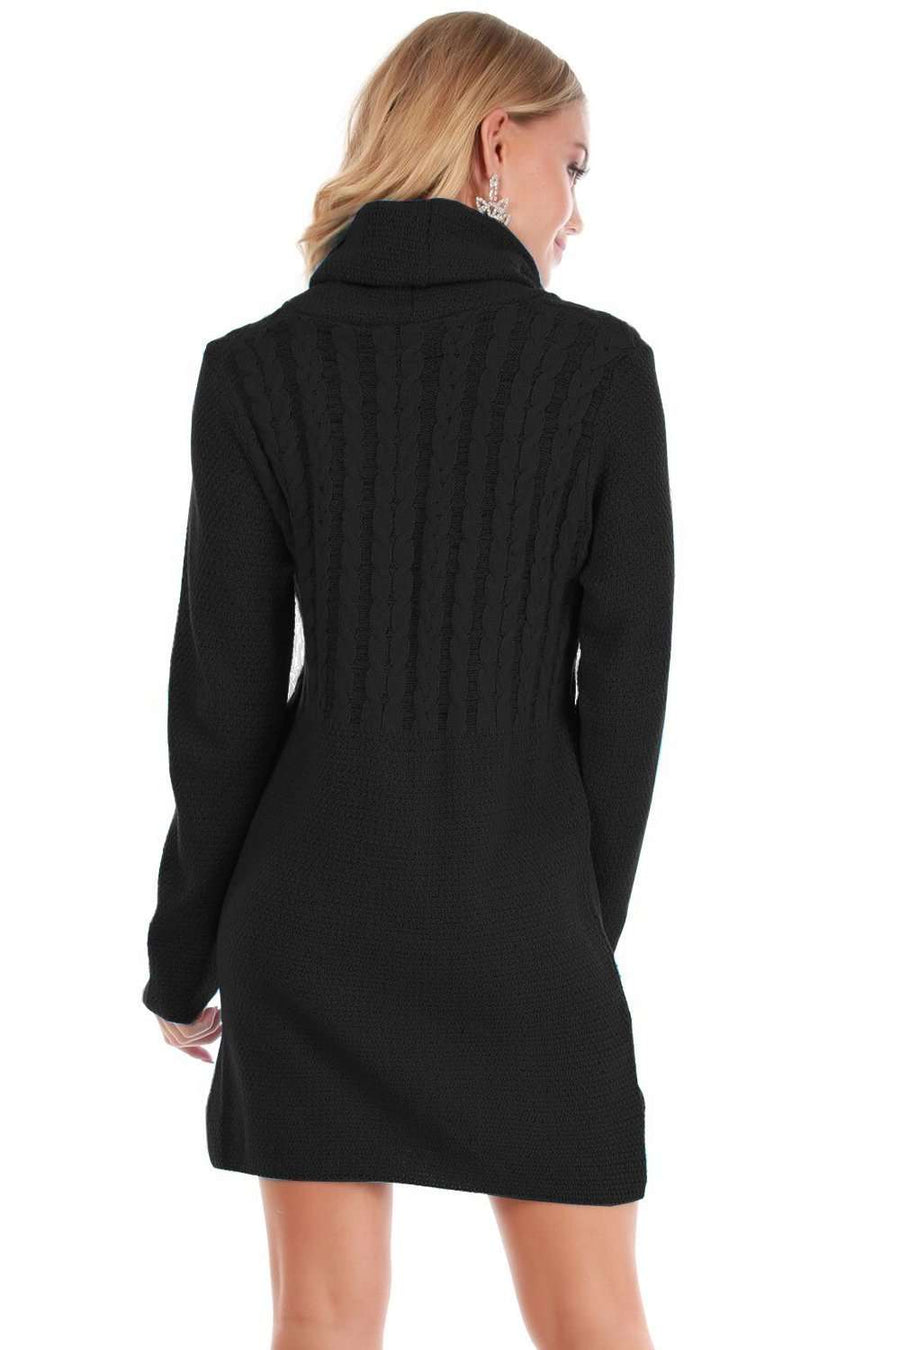 Lulu Roll Neck Knitted Jumper Dress - bejealous-com